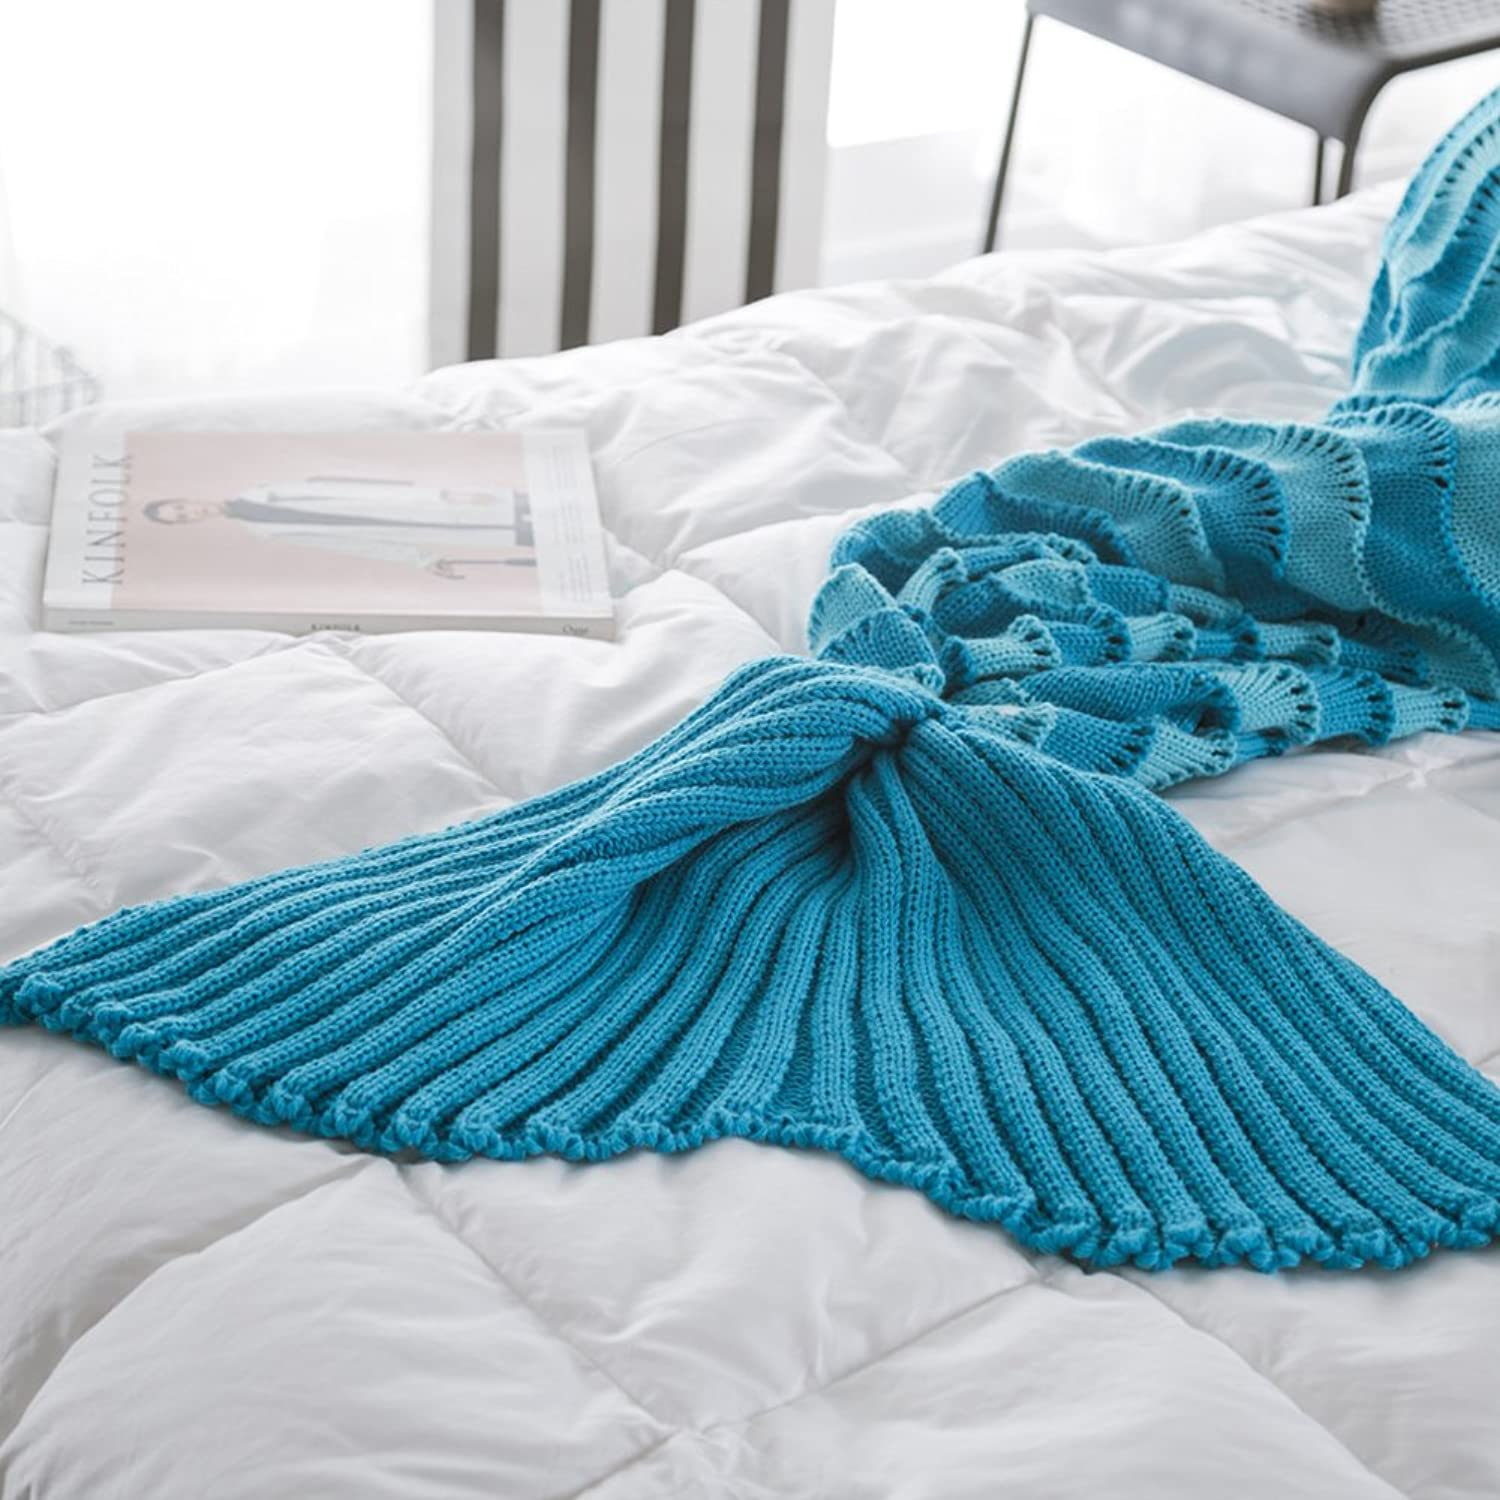 YIWEISI Mermaid Tail Blanket Hand Knitted Waves and Mermaid Blanket Scales for Adult Kids Girls Teens Sleeping Bag (bluee)